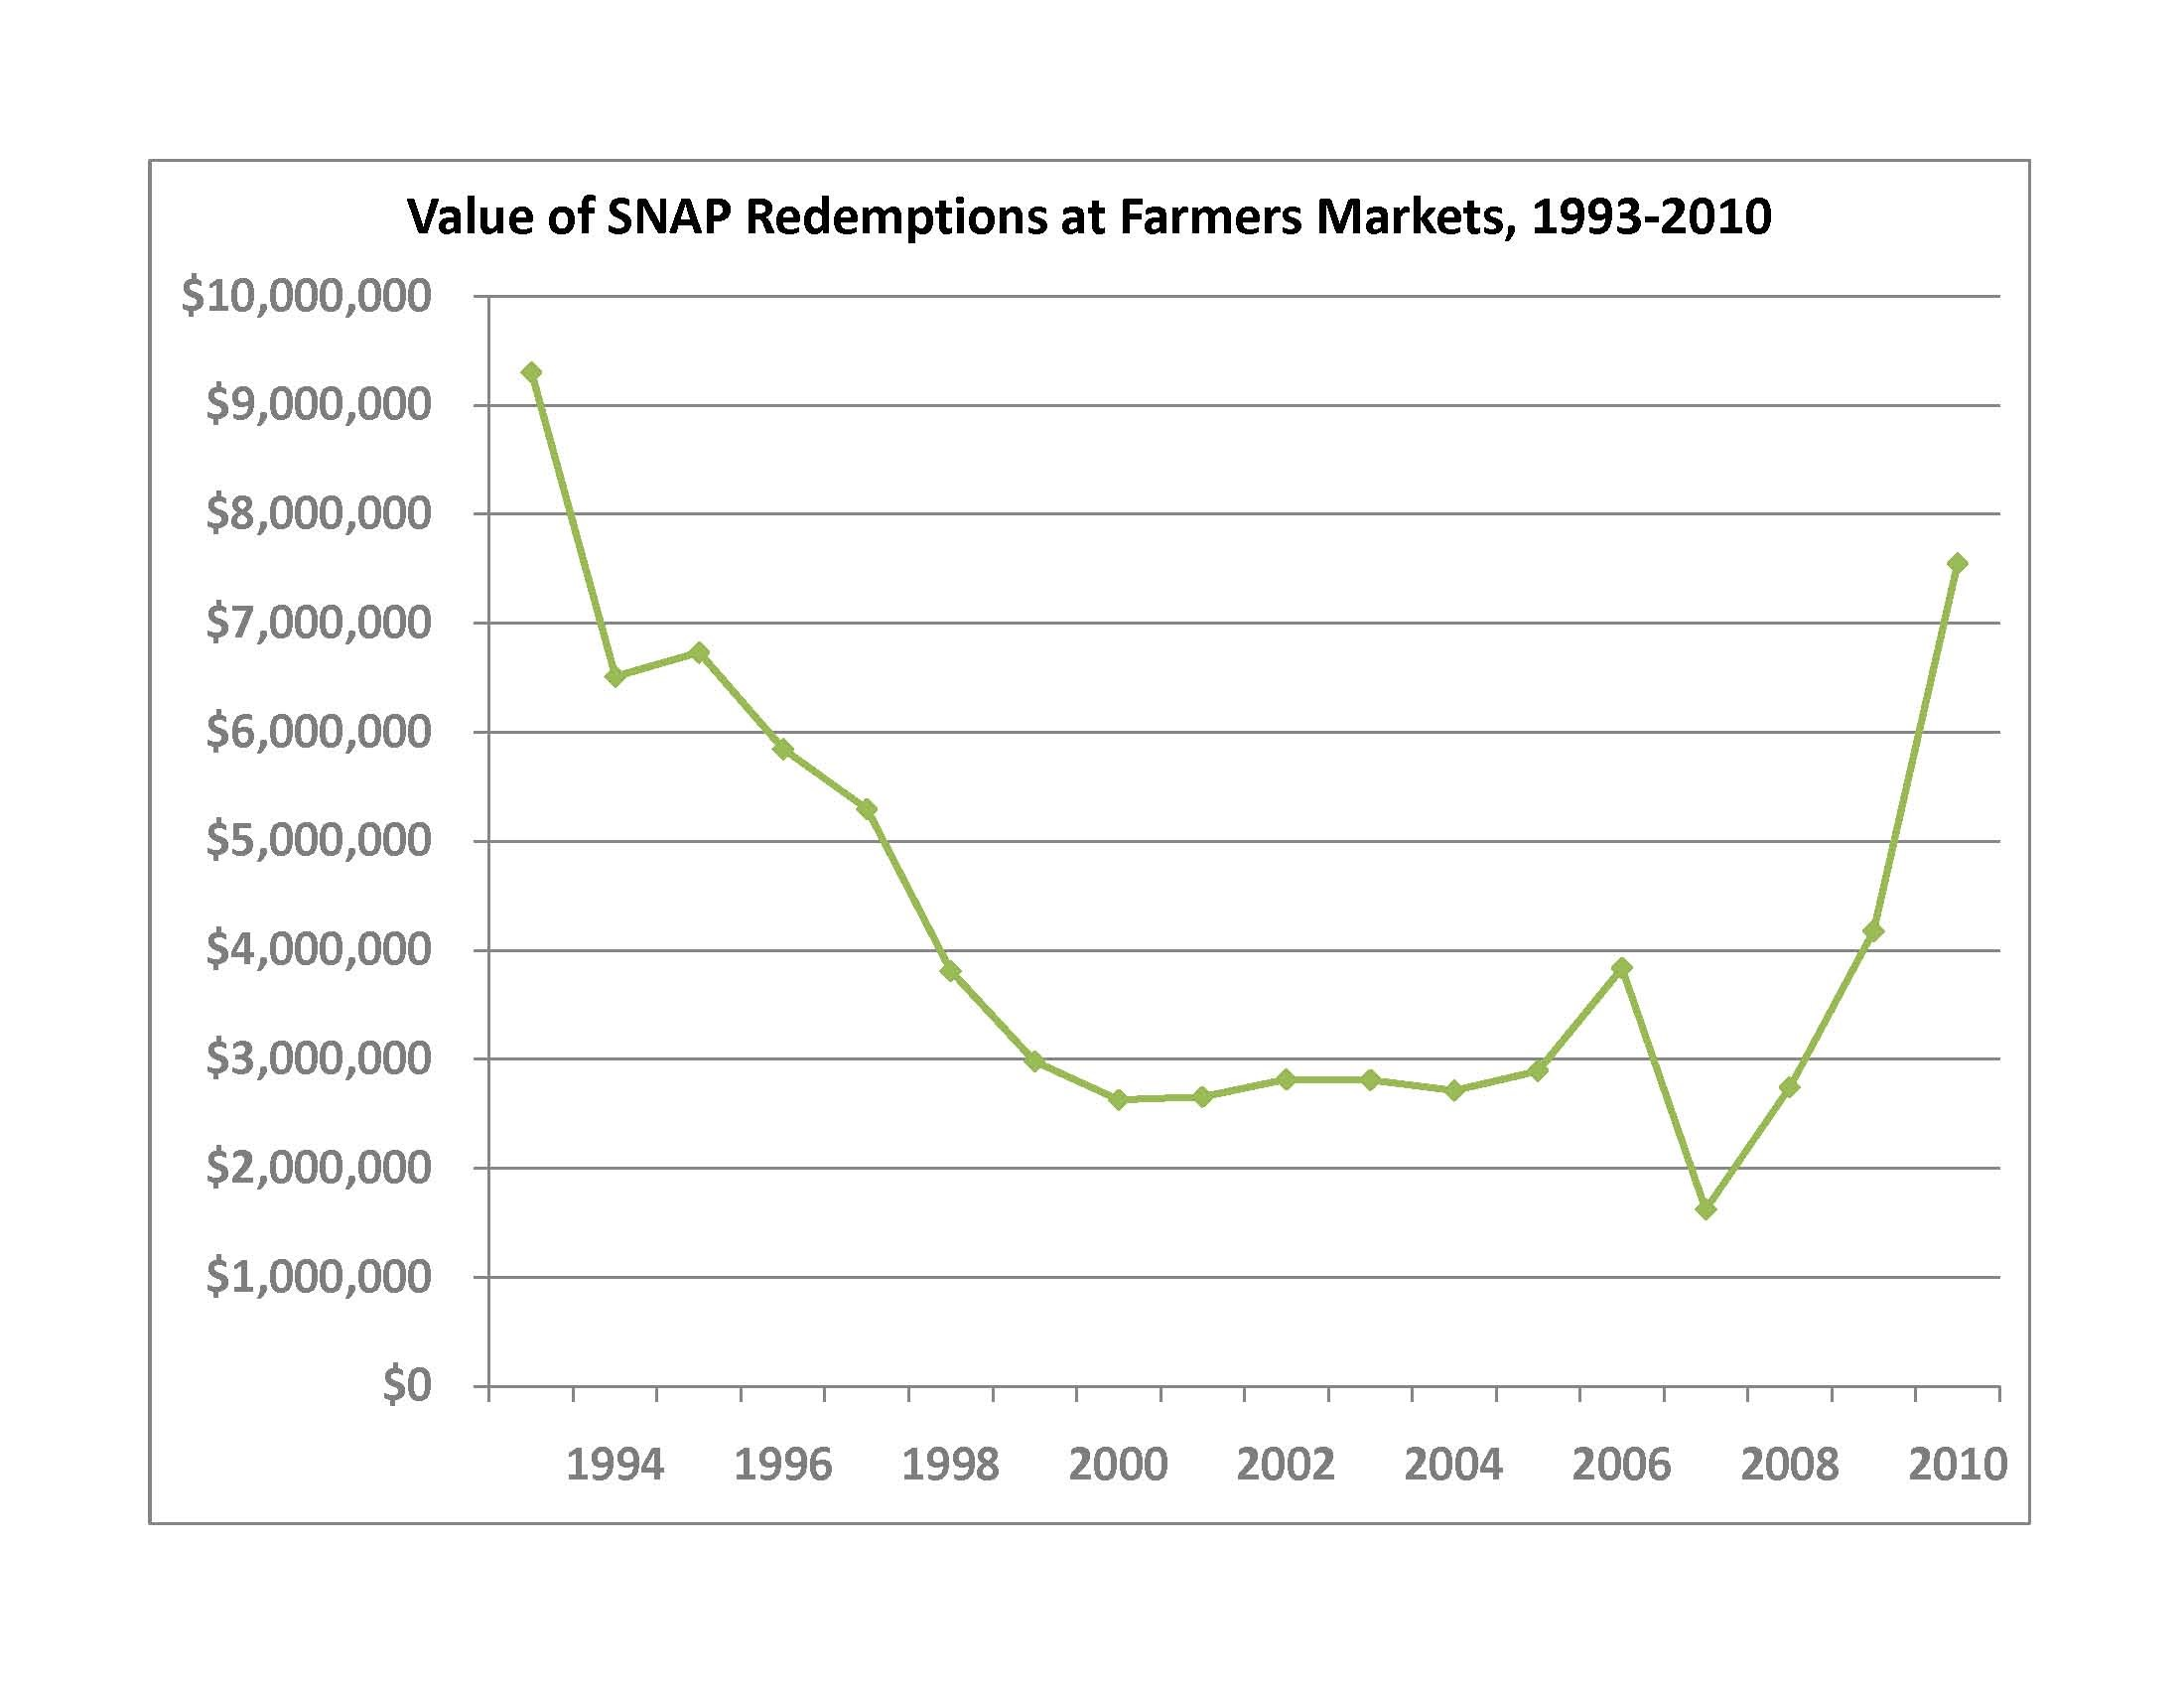 https://farmersmarketcoalition.org/snap-sales-soar-2010/ This chart compares the growth of SNAP redemption at farmers markets between 1993-2010